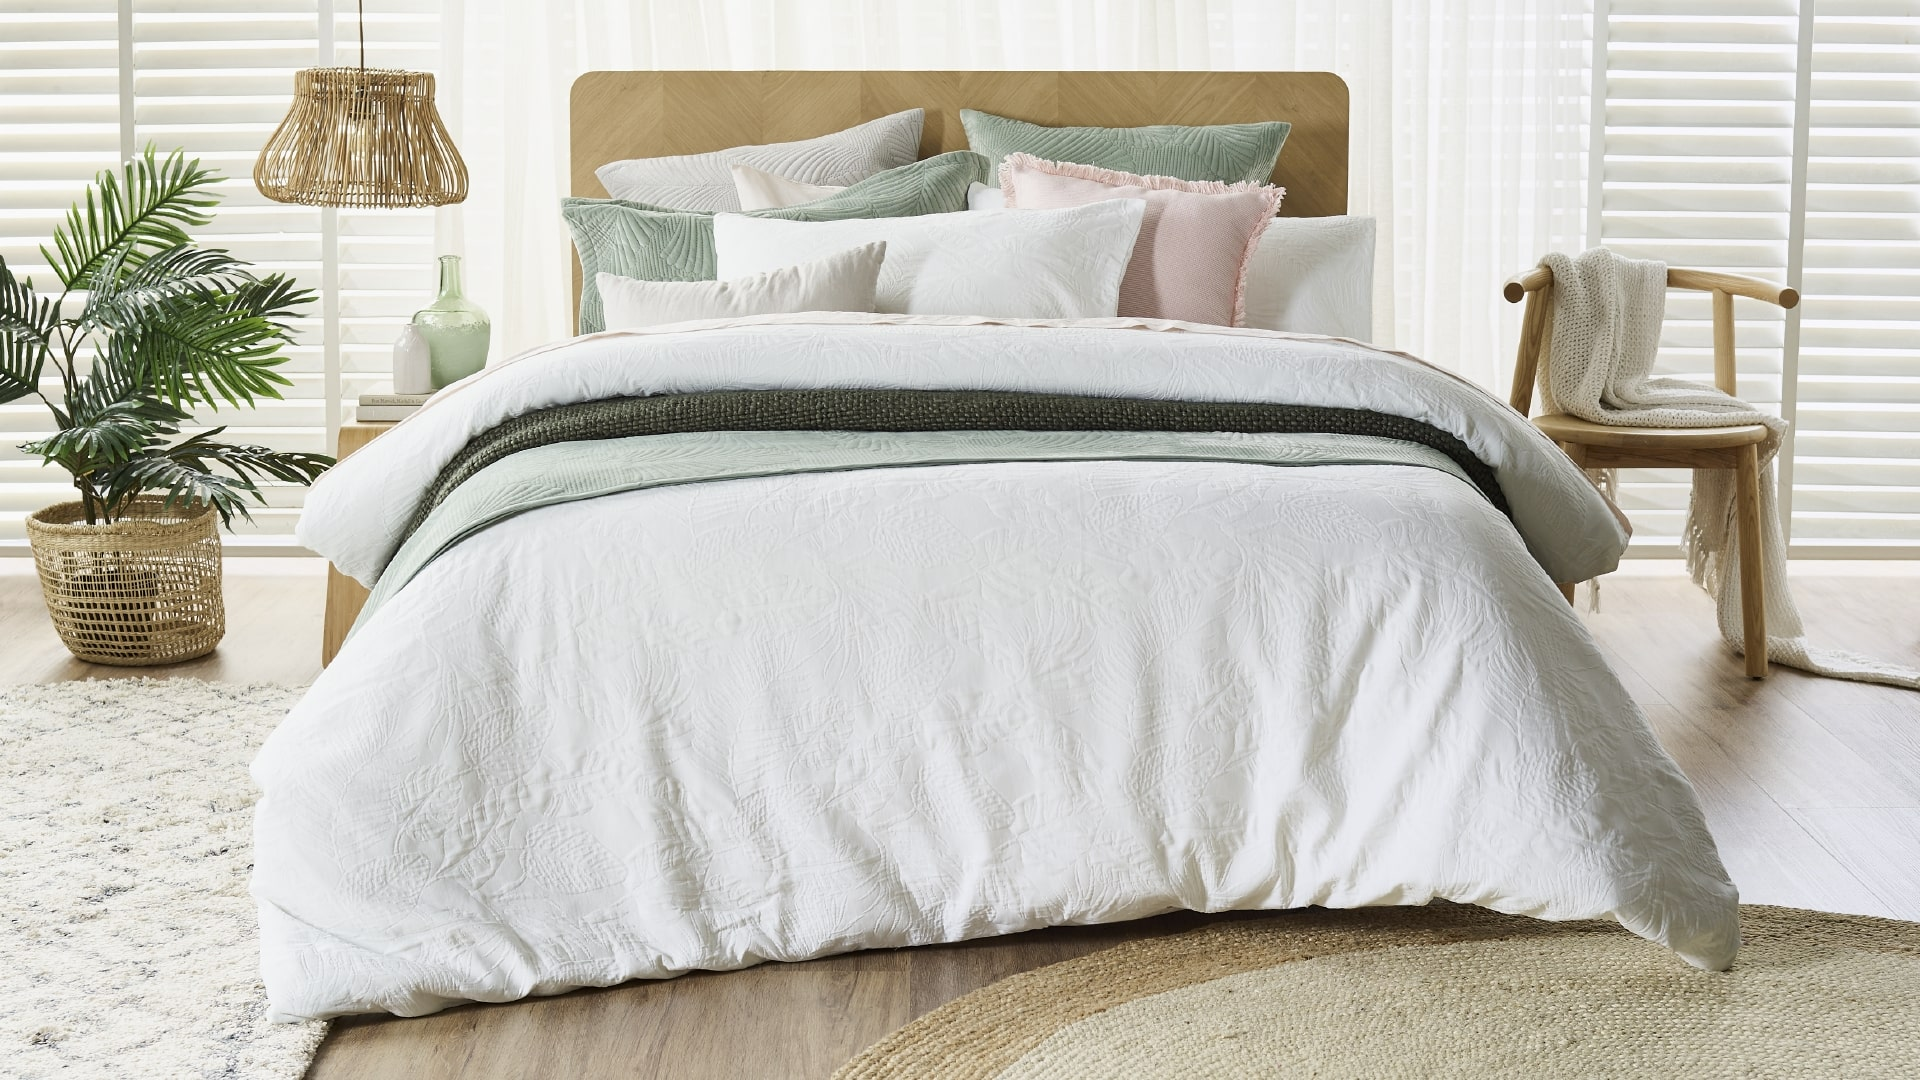 Care For Bedding & Bed Linen